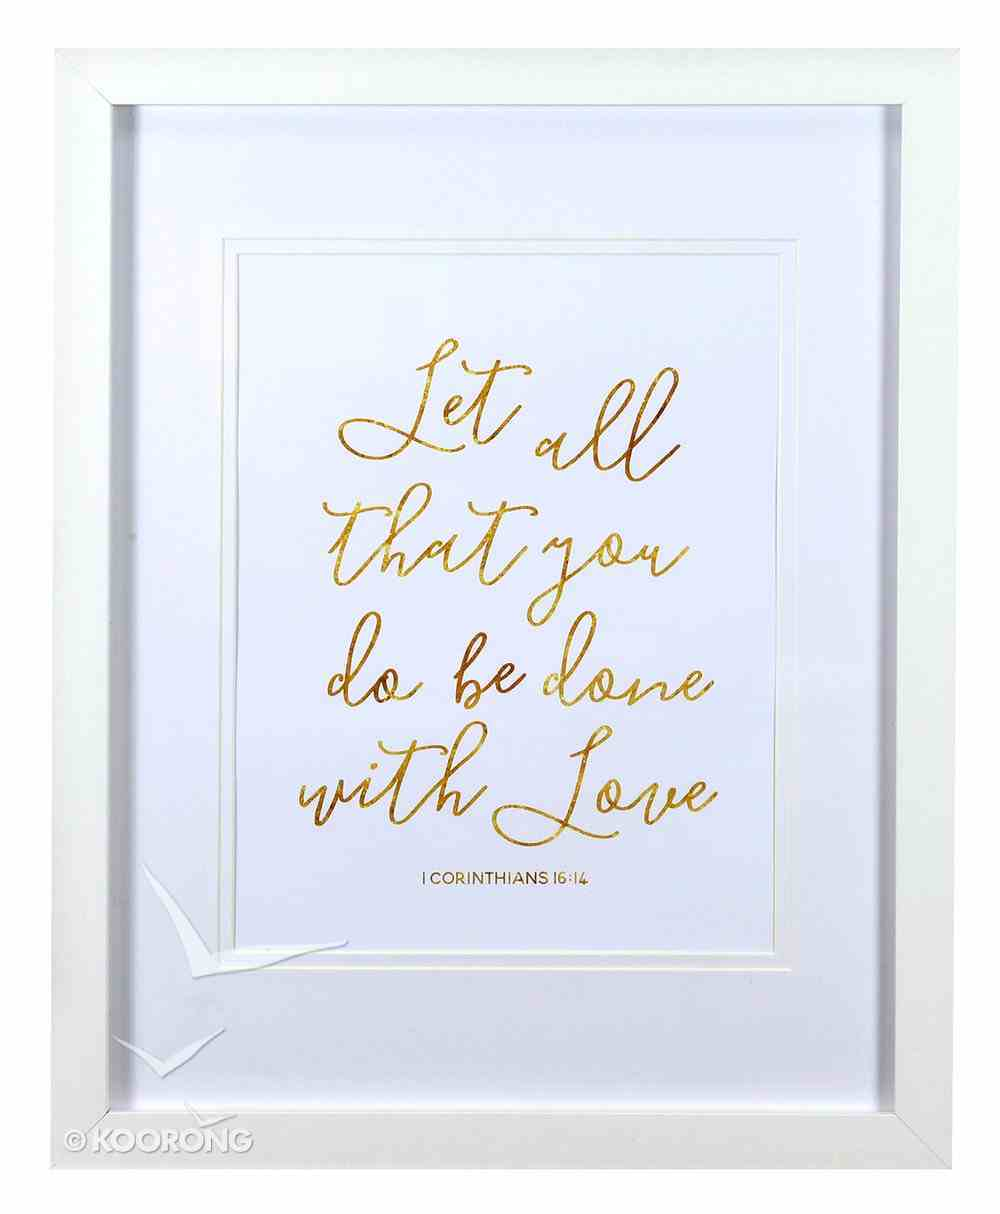 Medium Framed Gold Calligraphy Print: Let All That You Do, 1 Corinthians 16:14 Plaque